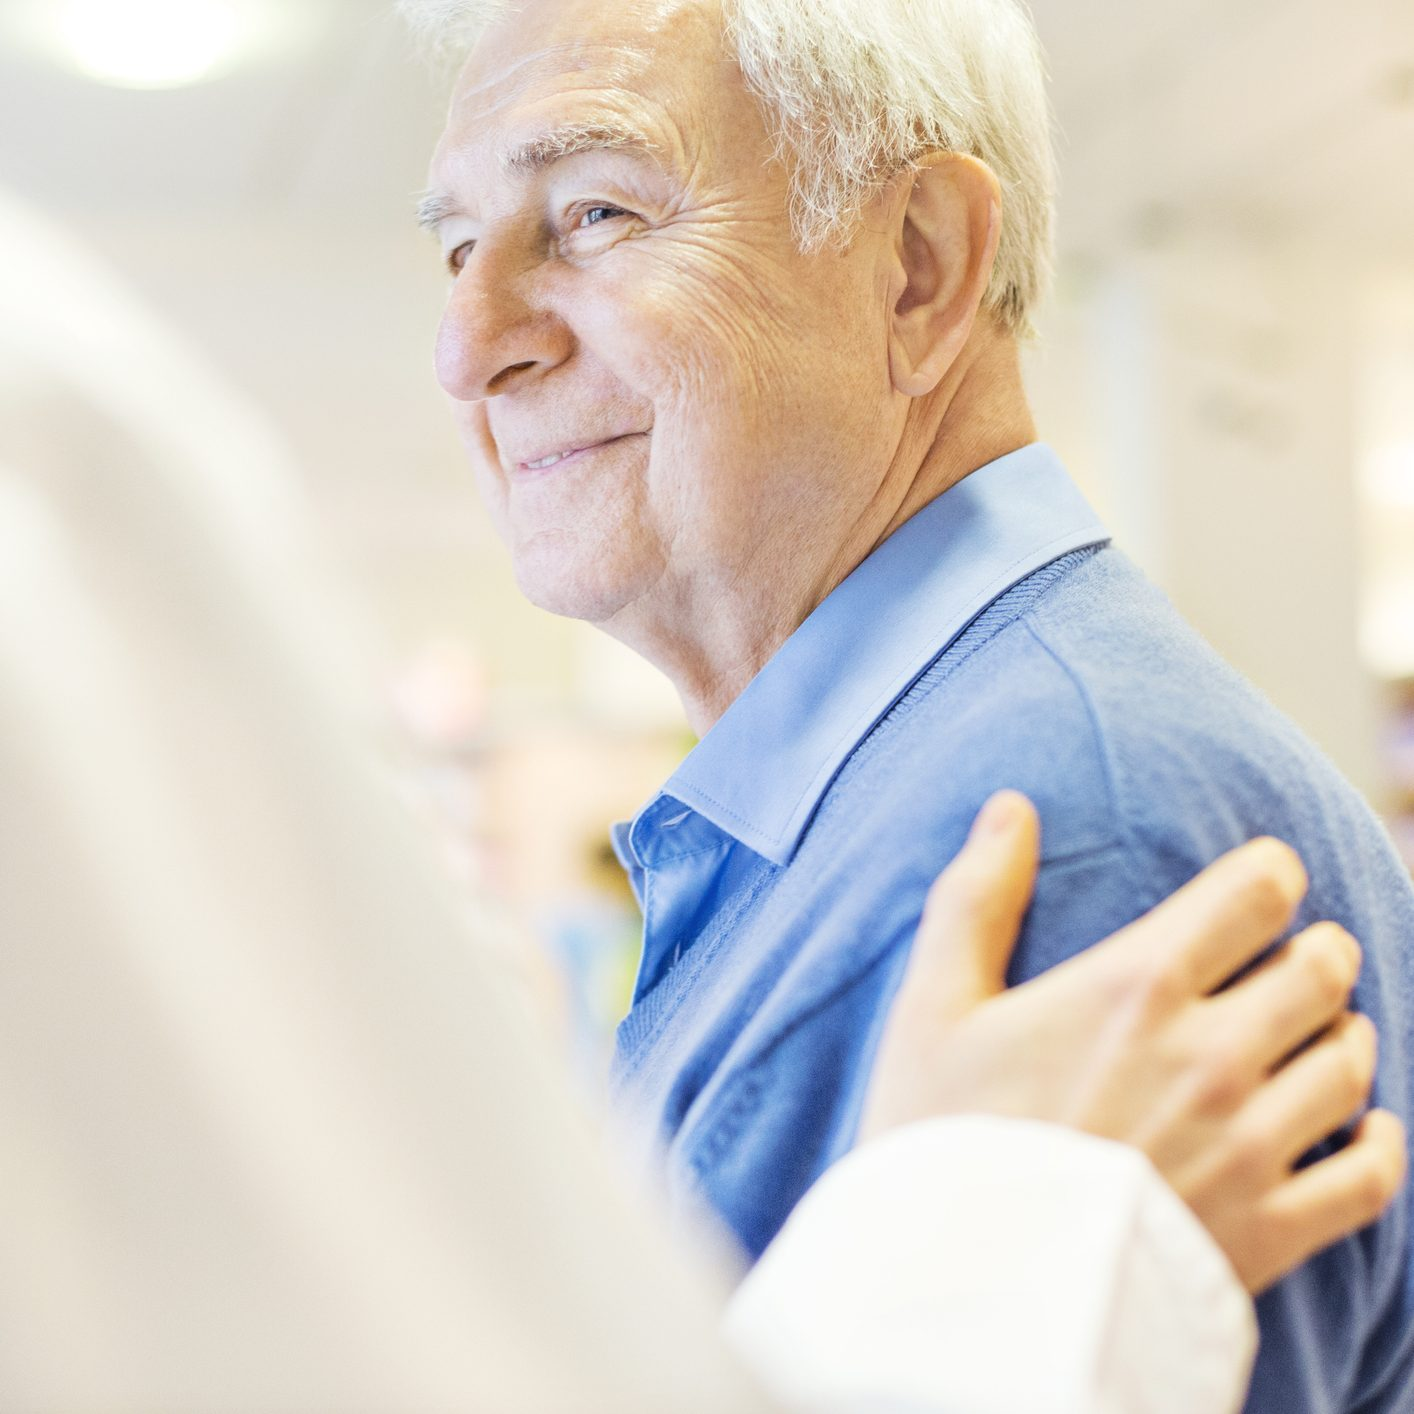 Cropped image of female pharmacist consoling senior man in store. Smiling male customer is looking at chemist. They are at brightly lit pharmacy.